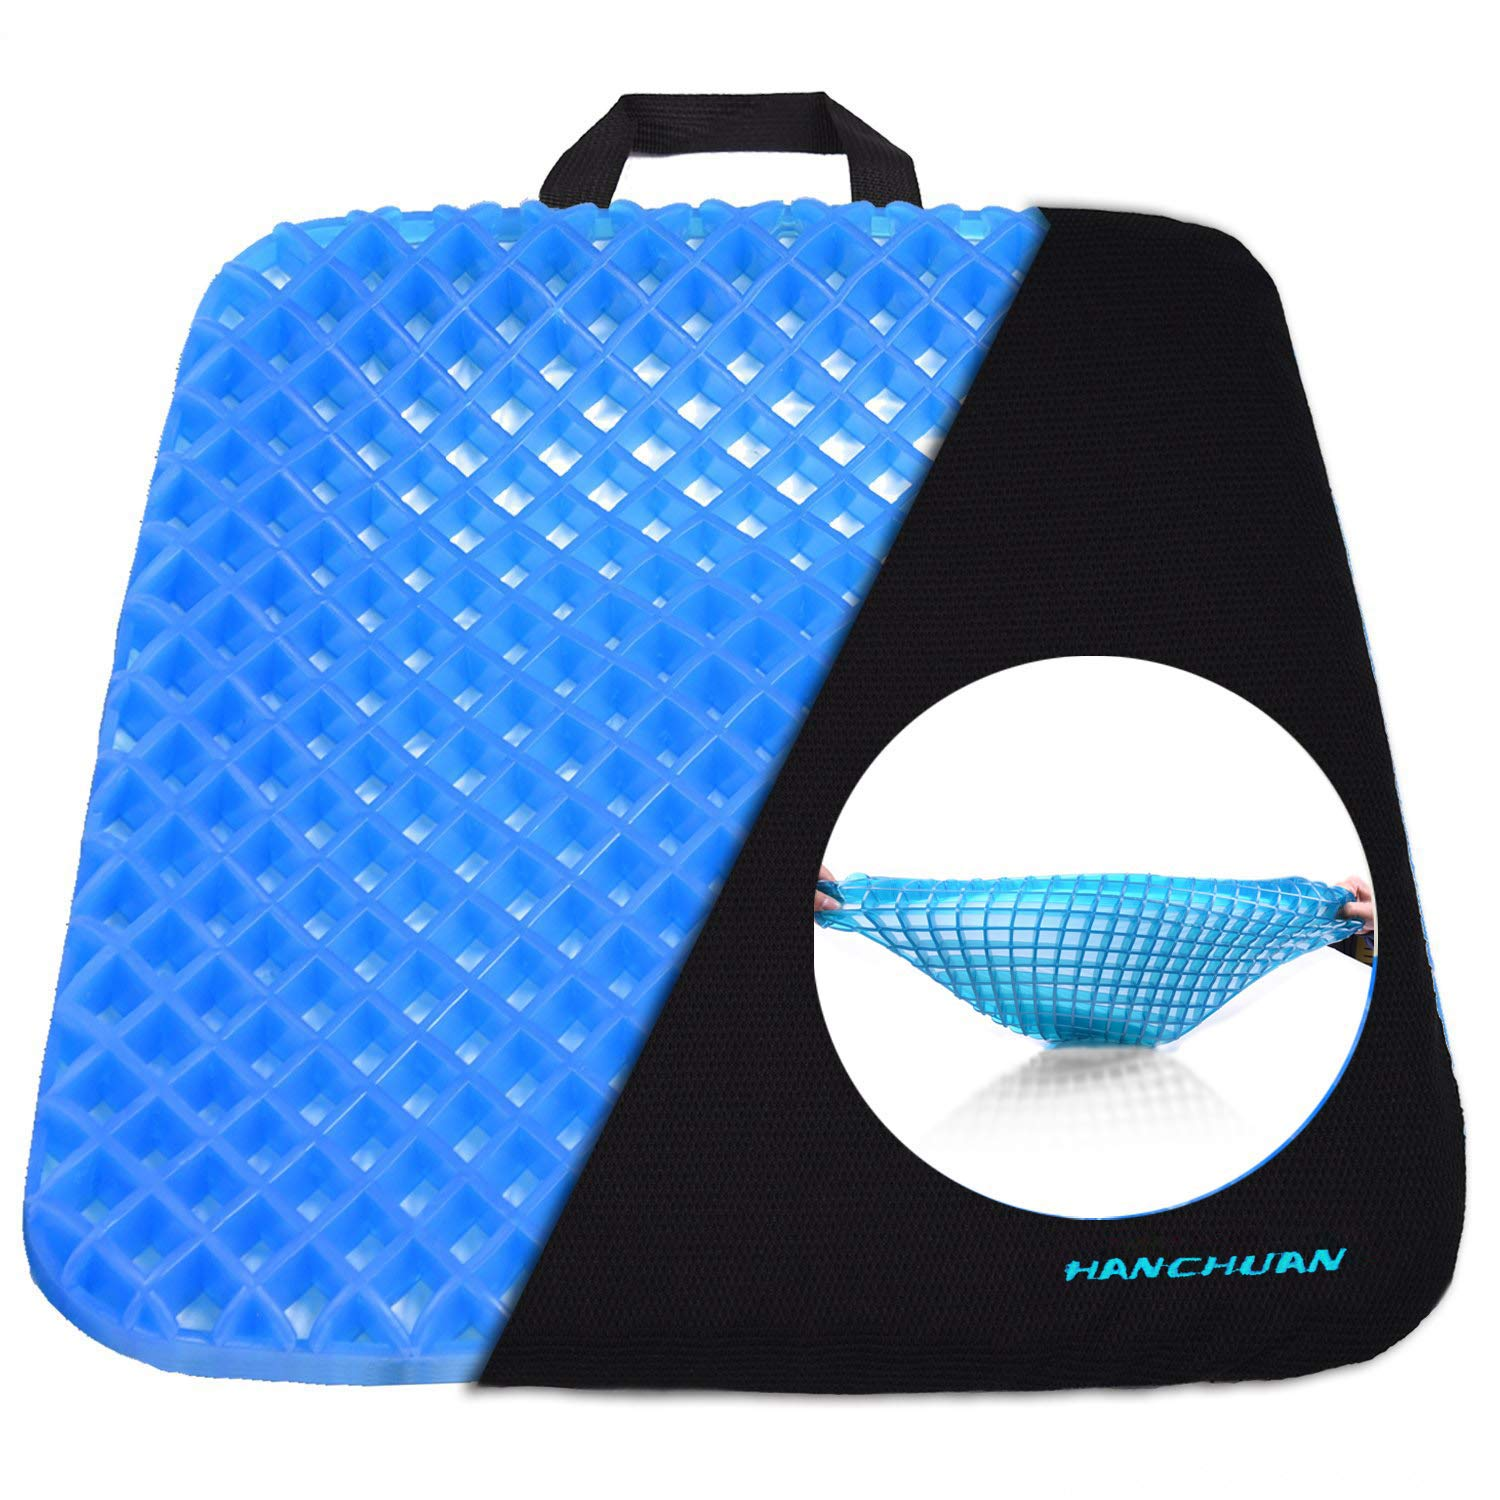 HANCHUAN® Gel Seat Cushion Coccyx Seat Support All Gel Cushion Air Circulation and Advanced Elastic Comfort Gel Sitter Cushion Ergonomic Designed for Office Chair, Car Seat and Wheelchair by HANCHUAN